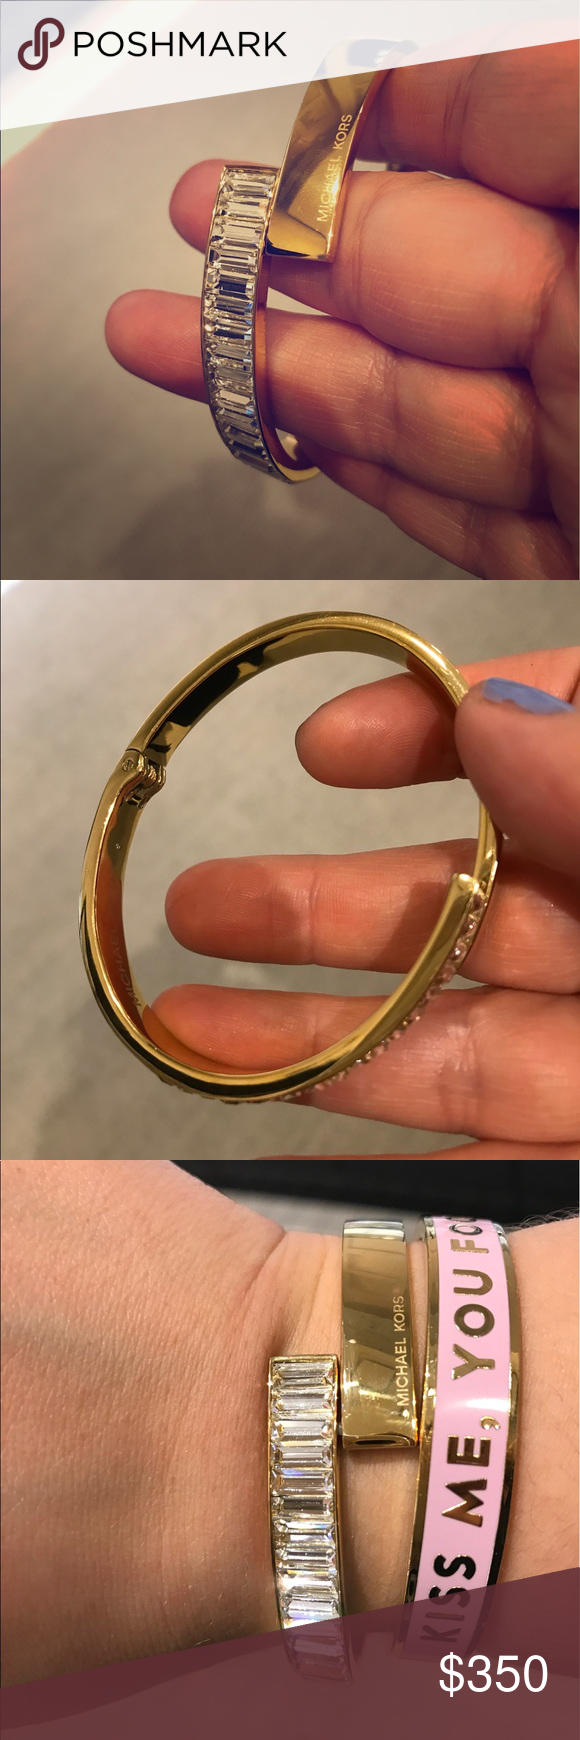 Michael kors and kate space bangles this listing is for bangles